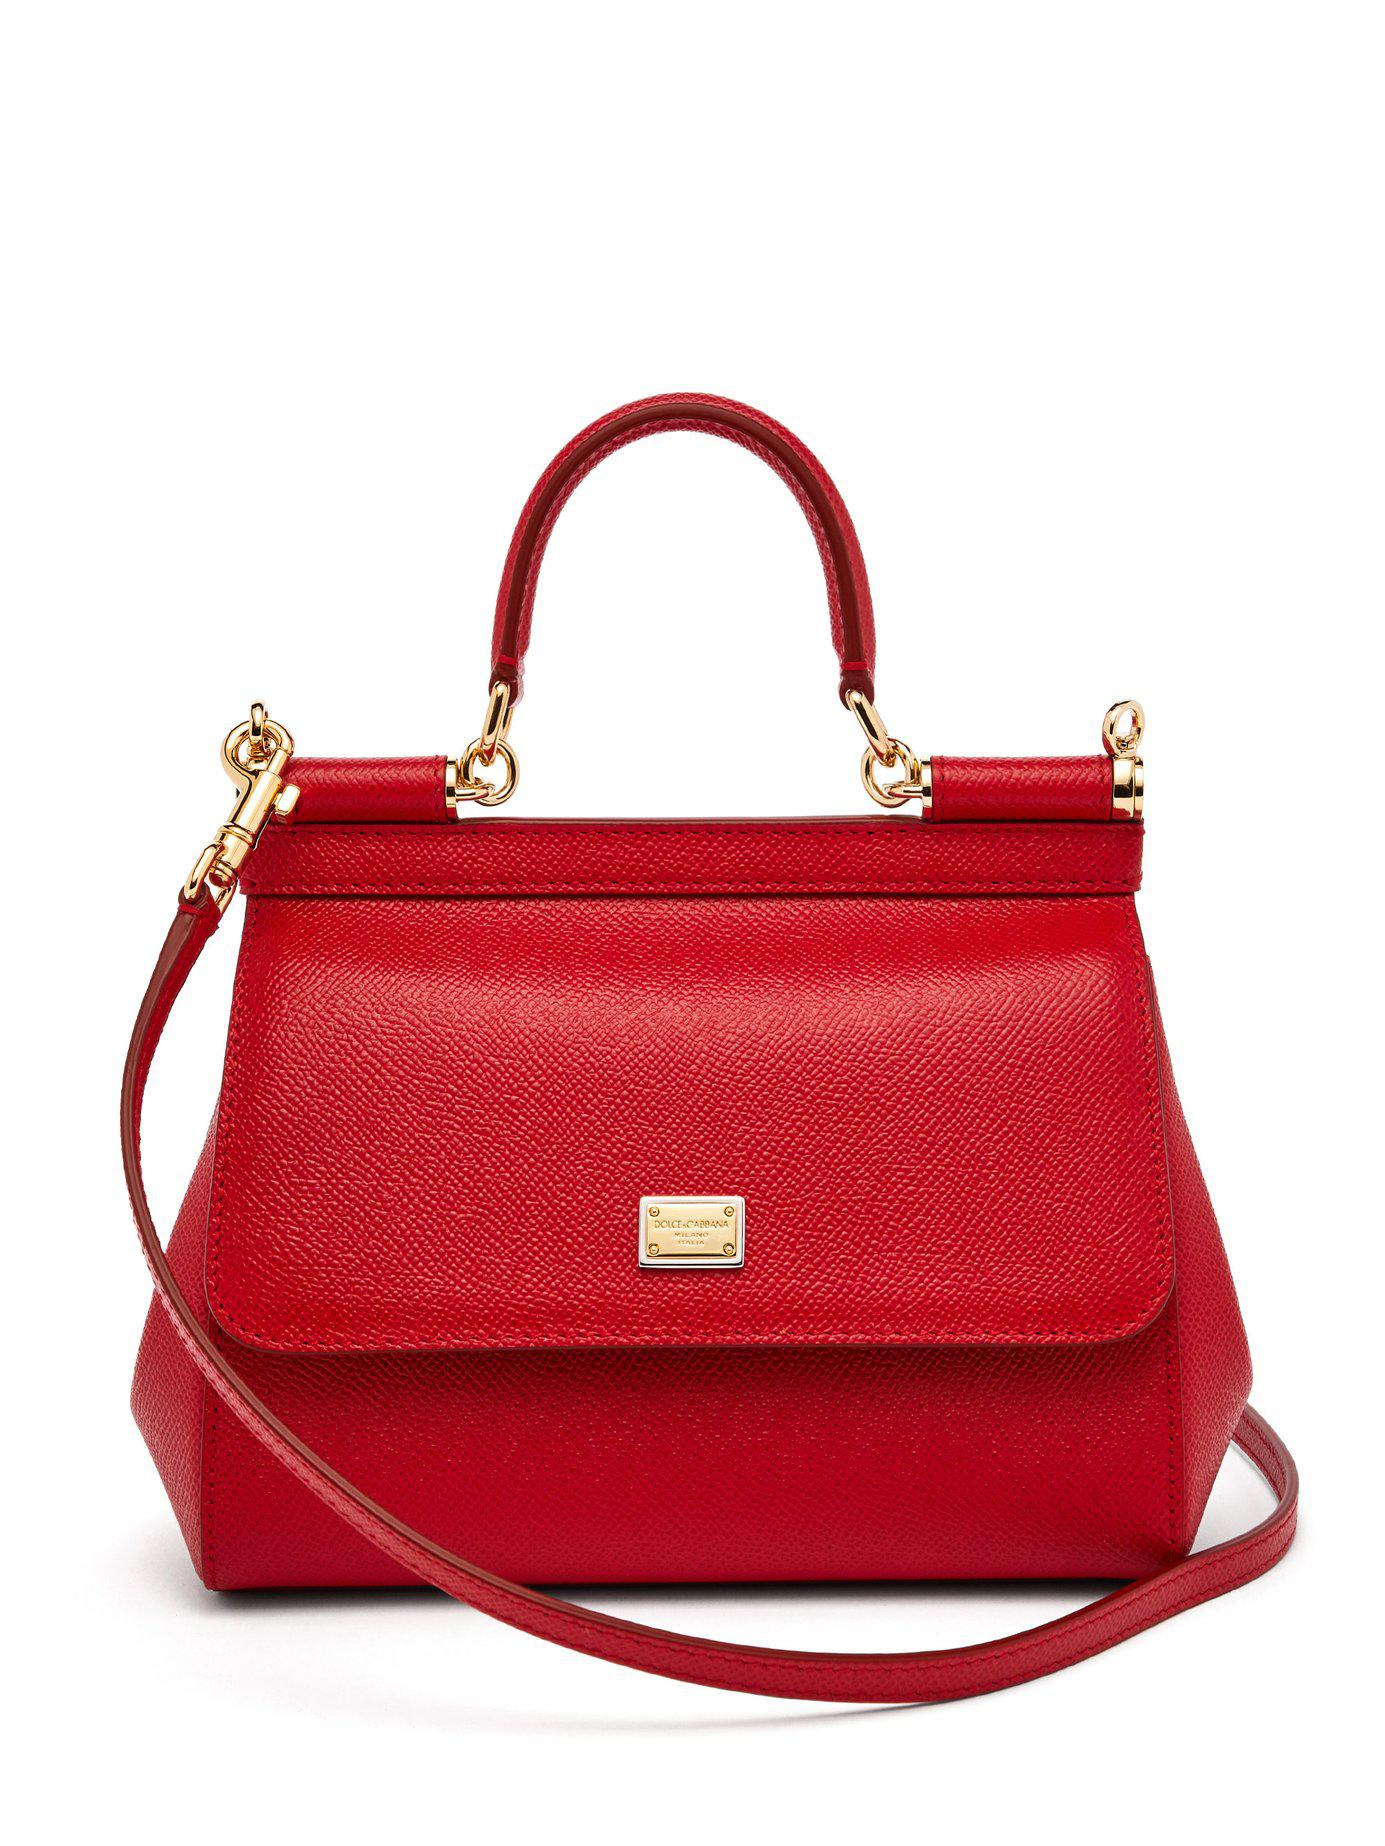 Lyst - Dolce   Gabbana Sicily Small Dauphine Leather Bag in Red f9bcd5256f